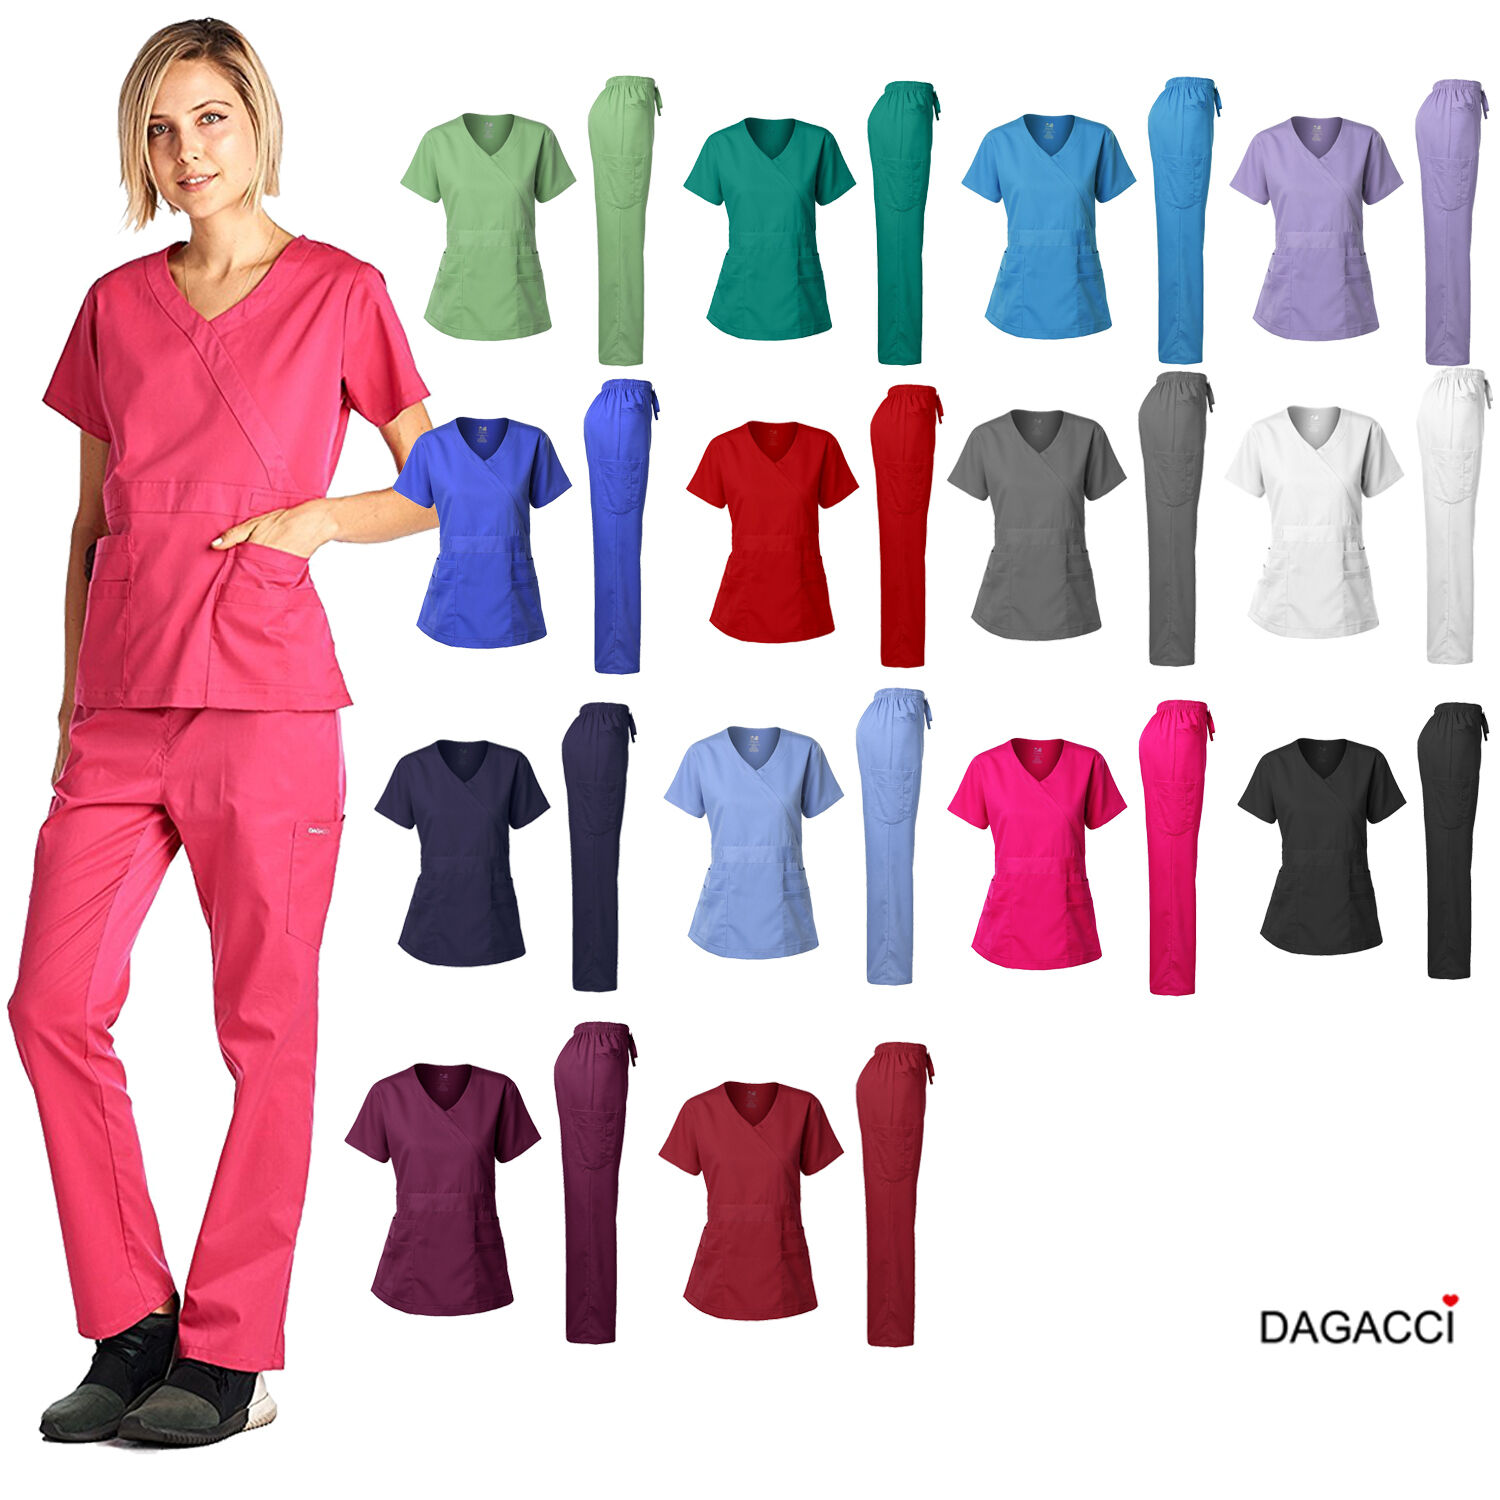 Dagacci Medical Uniform Women's Scrub Set Stretch and Soft Y